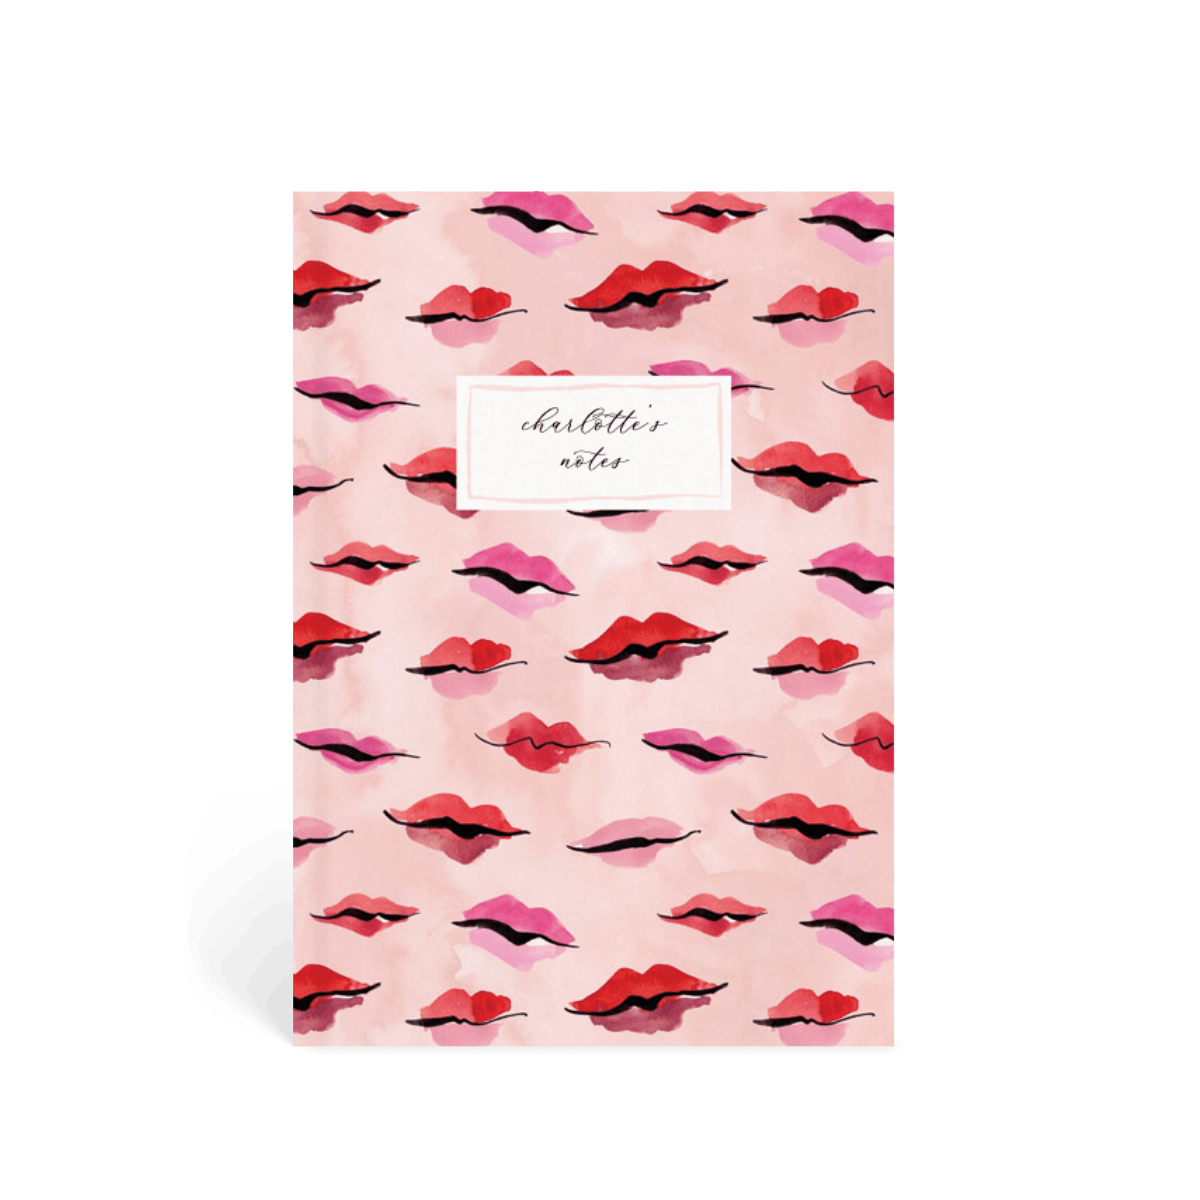 Https%3a%2f%2fwww.papier.com%2fproduct image%2f99453%2f25%2flips lips lips 25367 front 1577112848.png?ixlib=rb 1.1